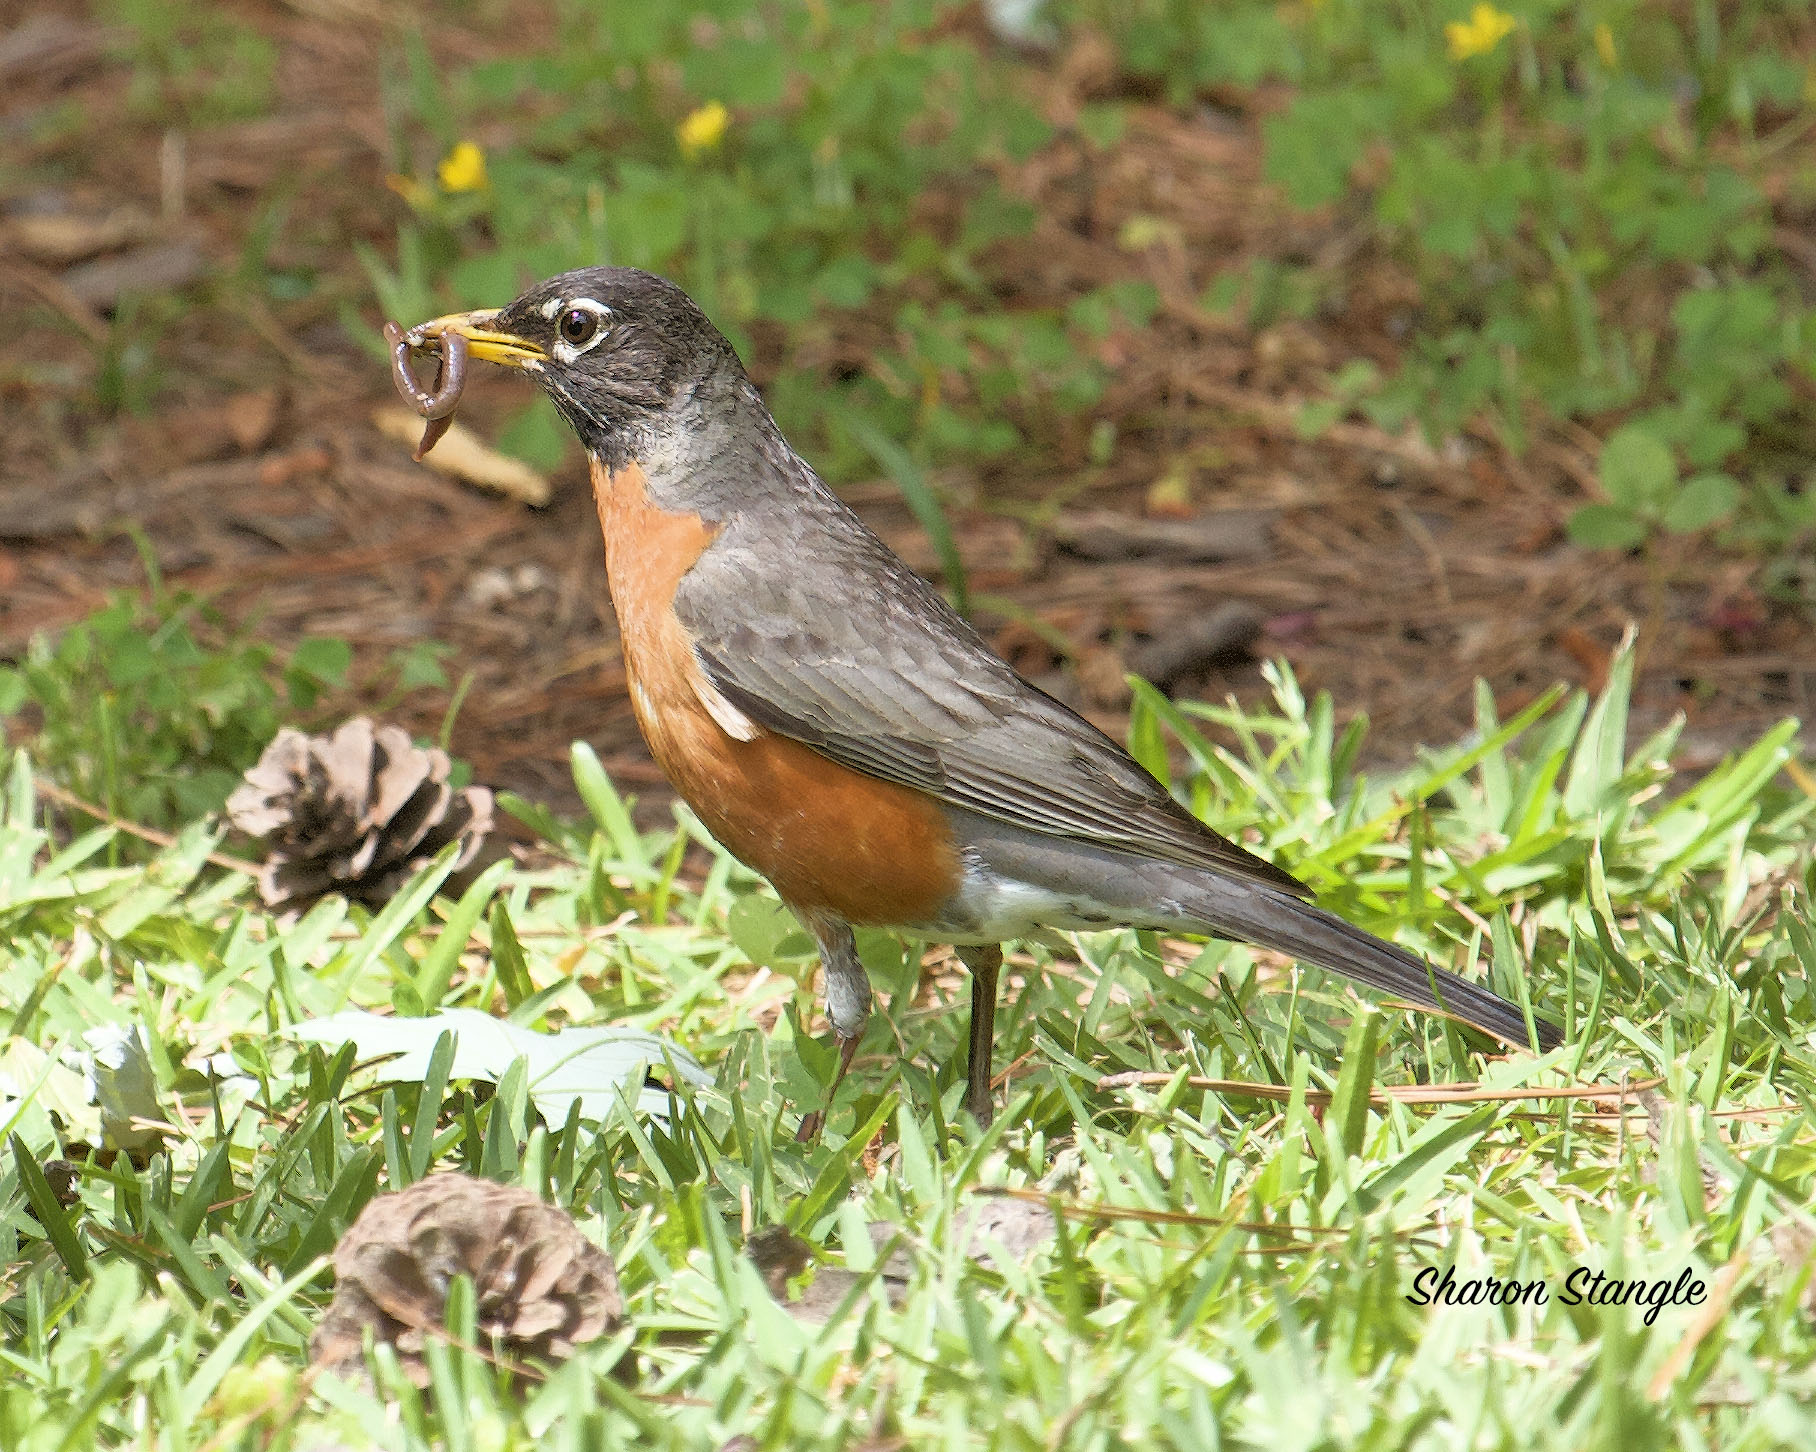 American Robin With a Worm by Sharon Stangle